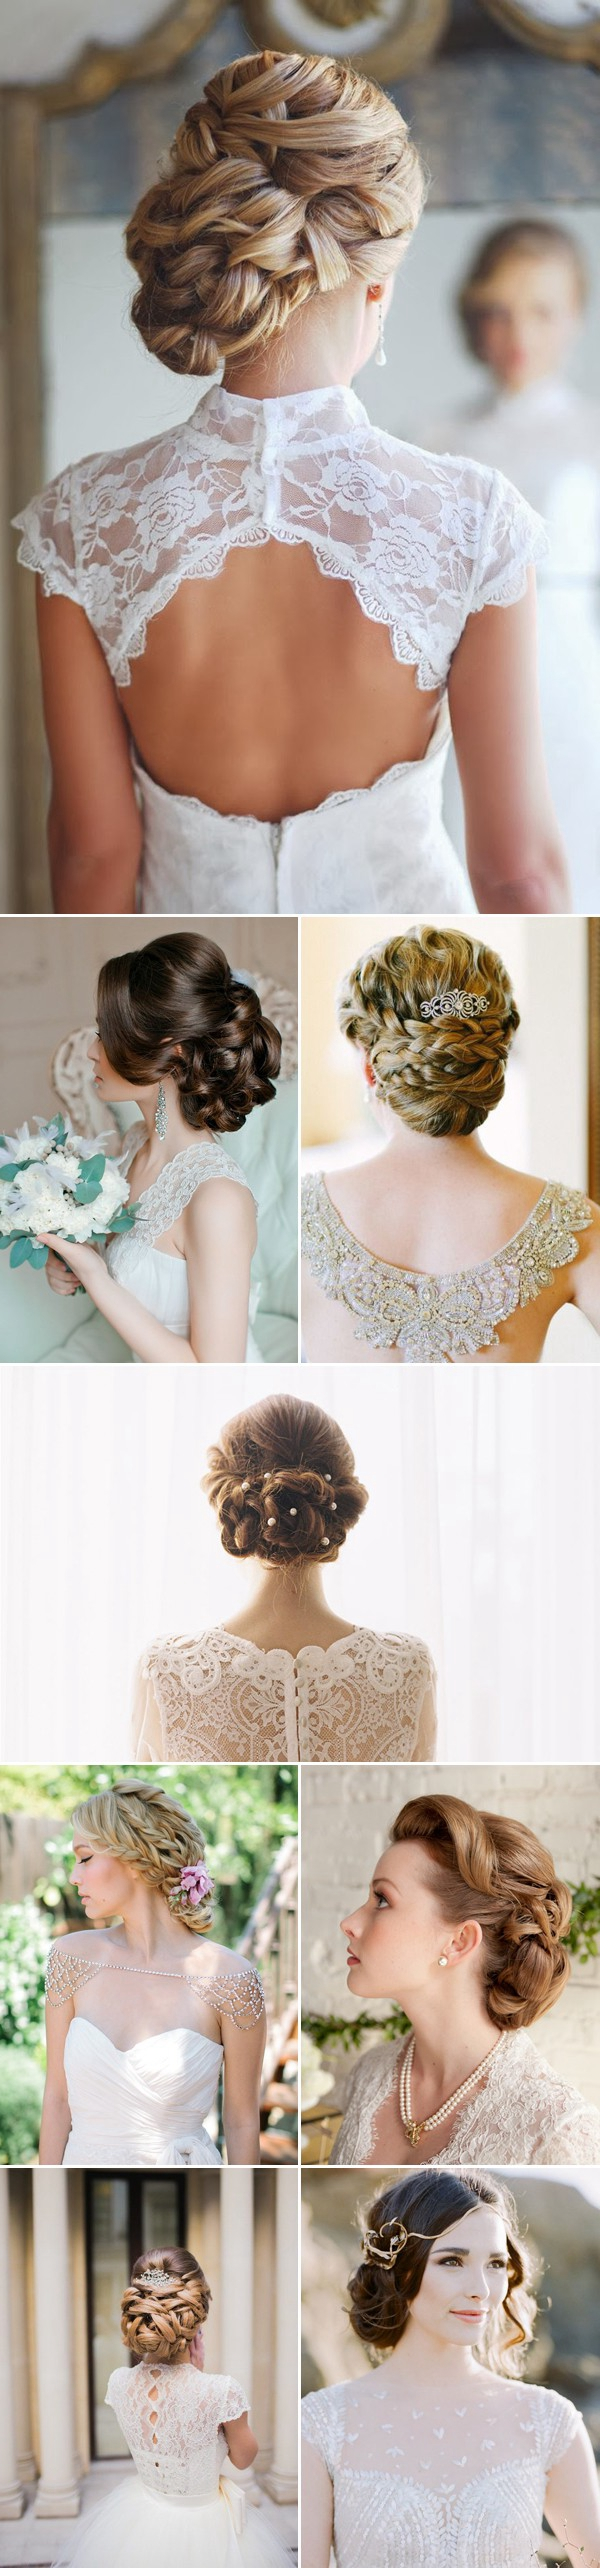 braided-updo-hairstyles-for-wedding